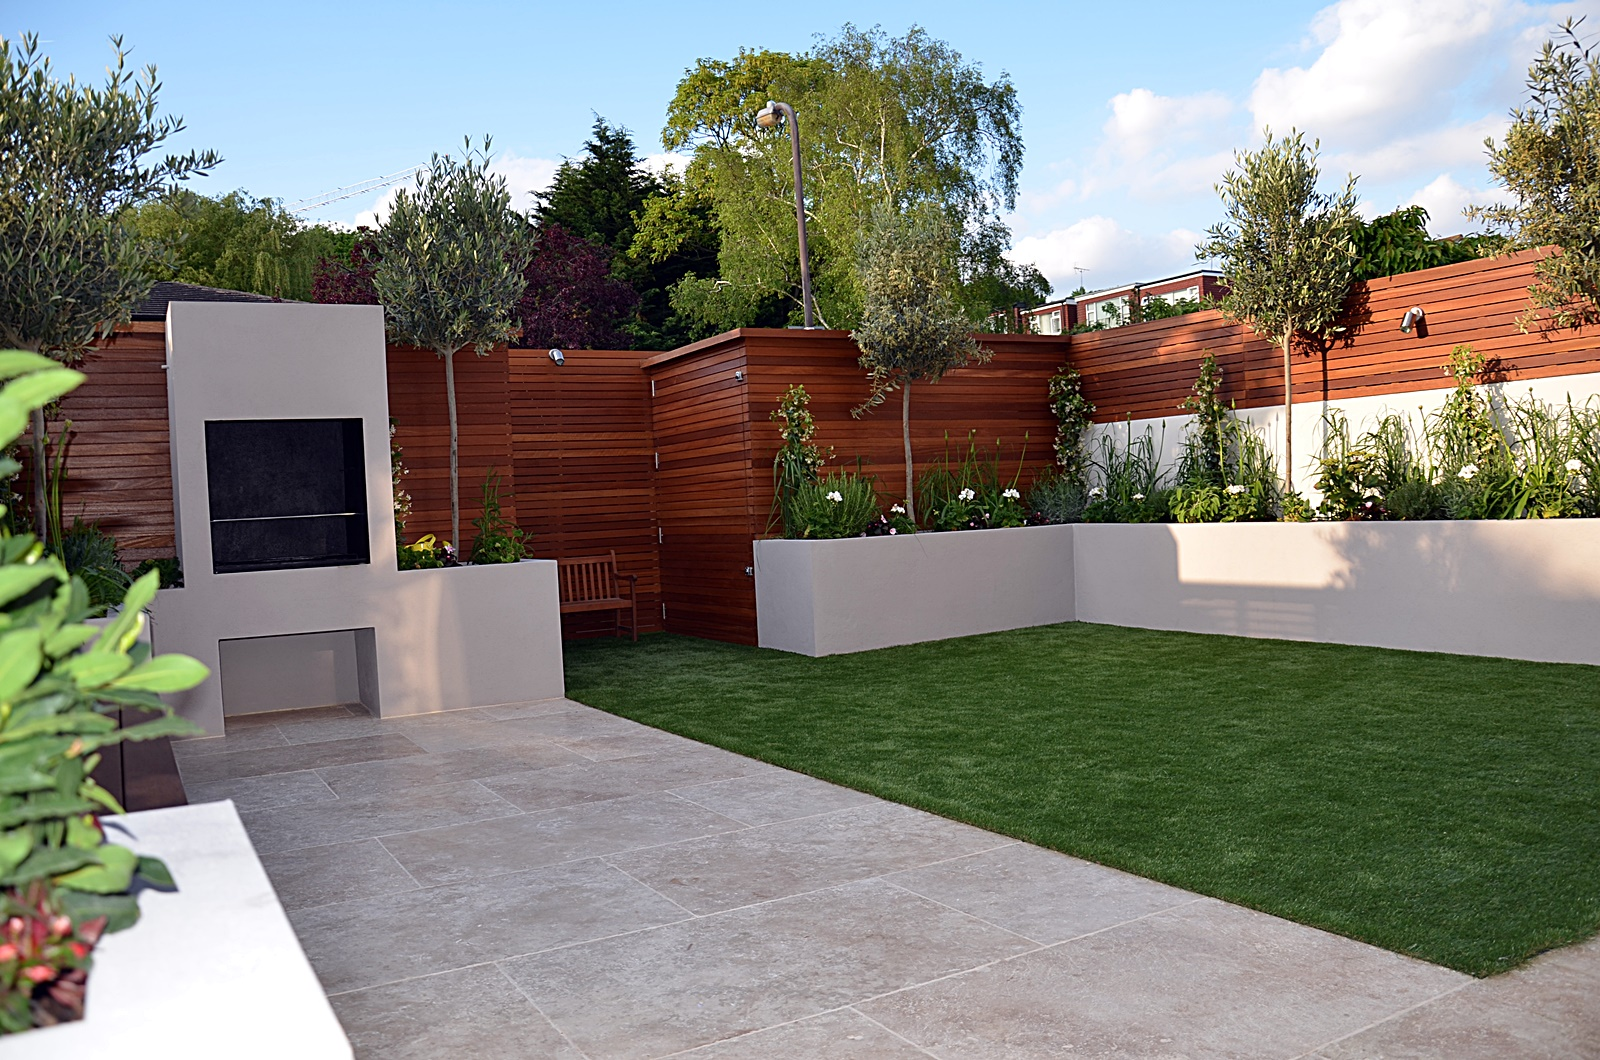 Modern garden design fulham chelsea clapham battersea for Garden area design